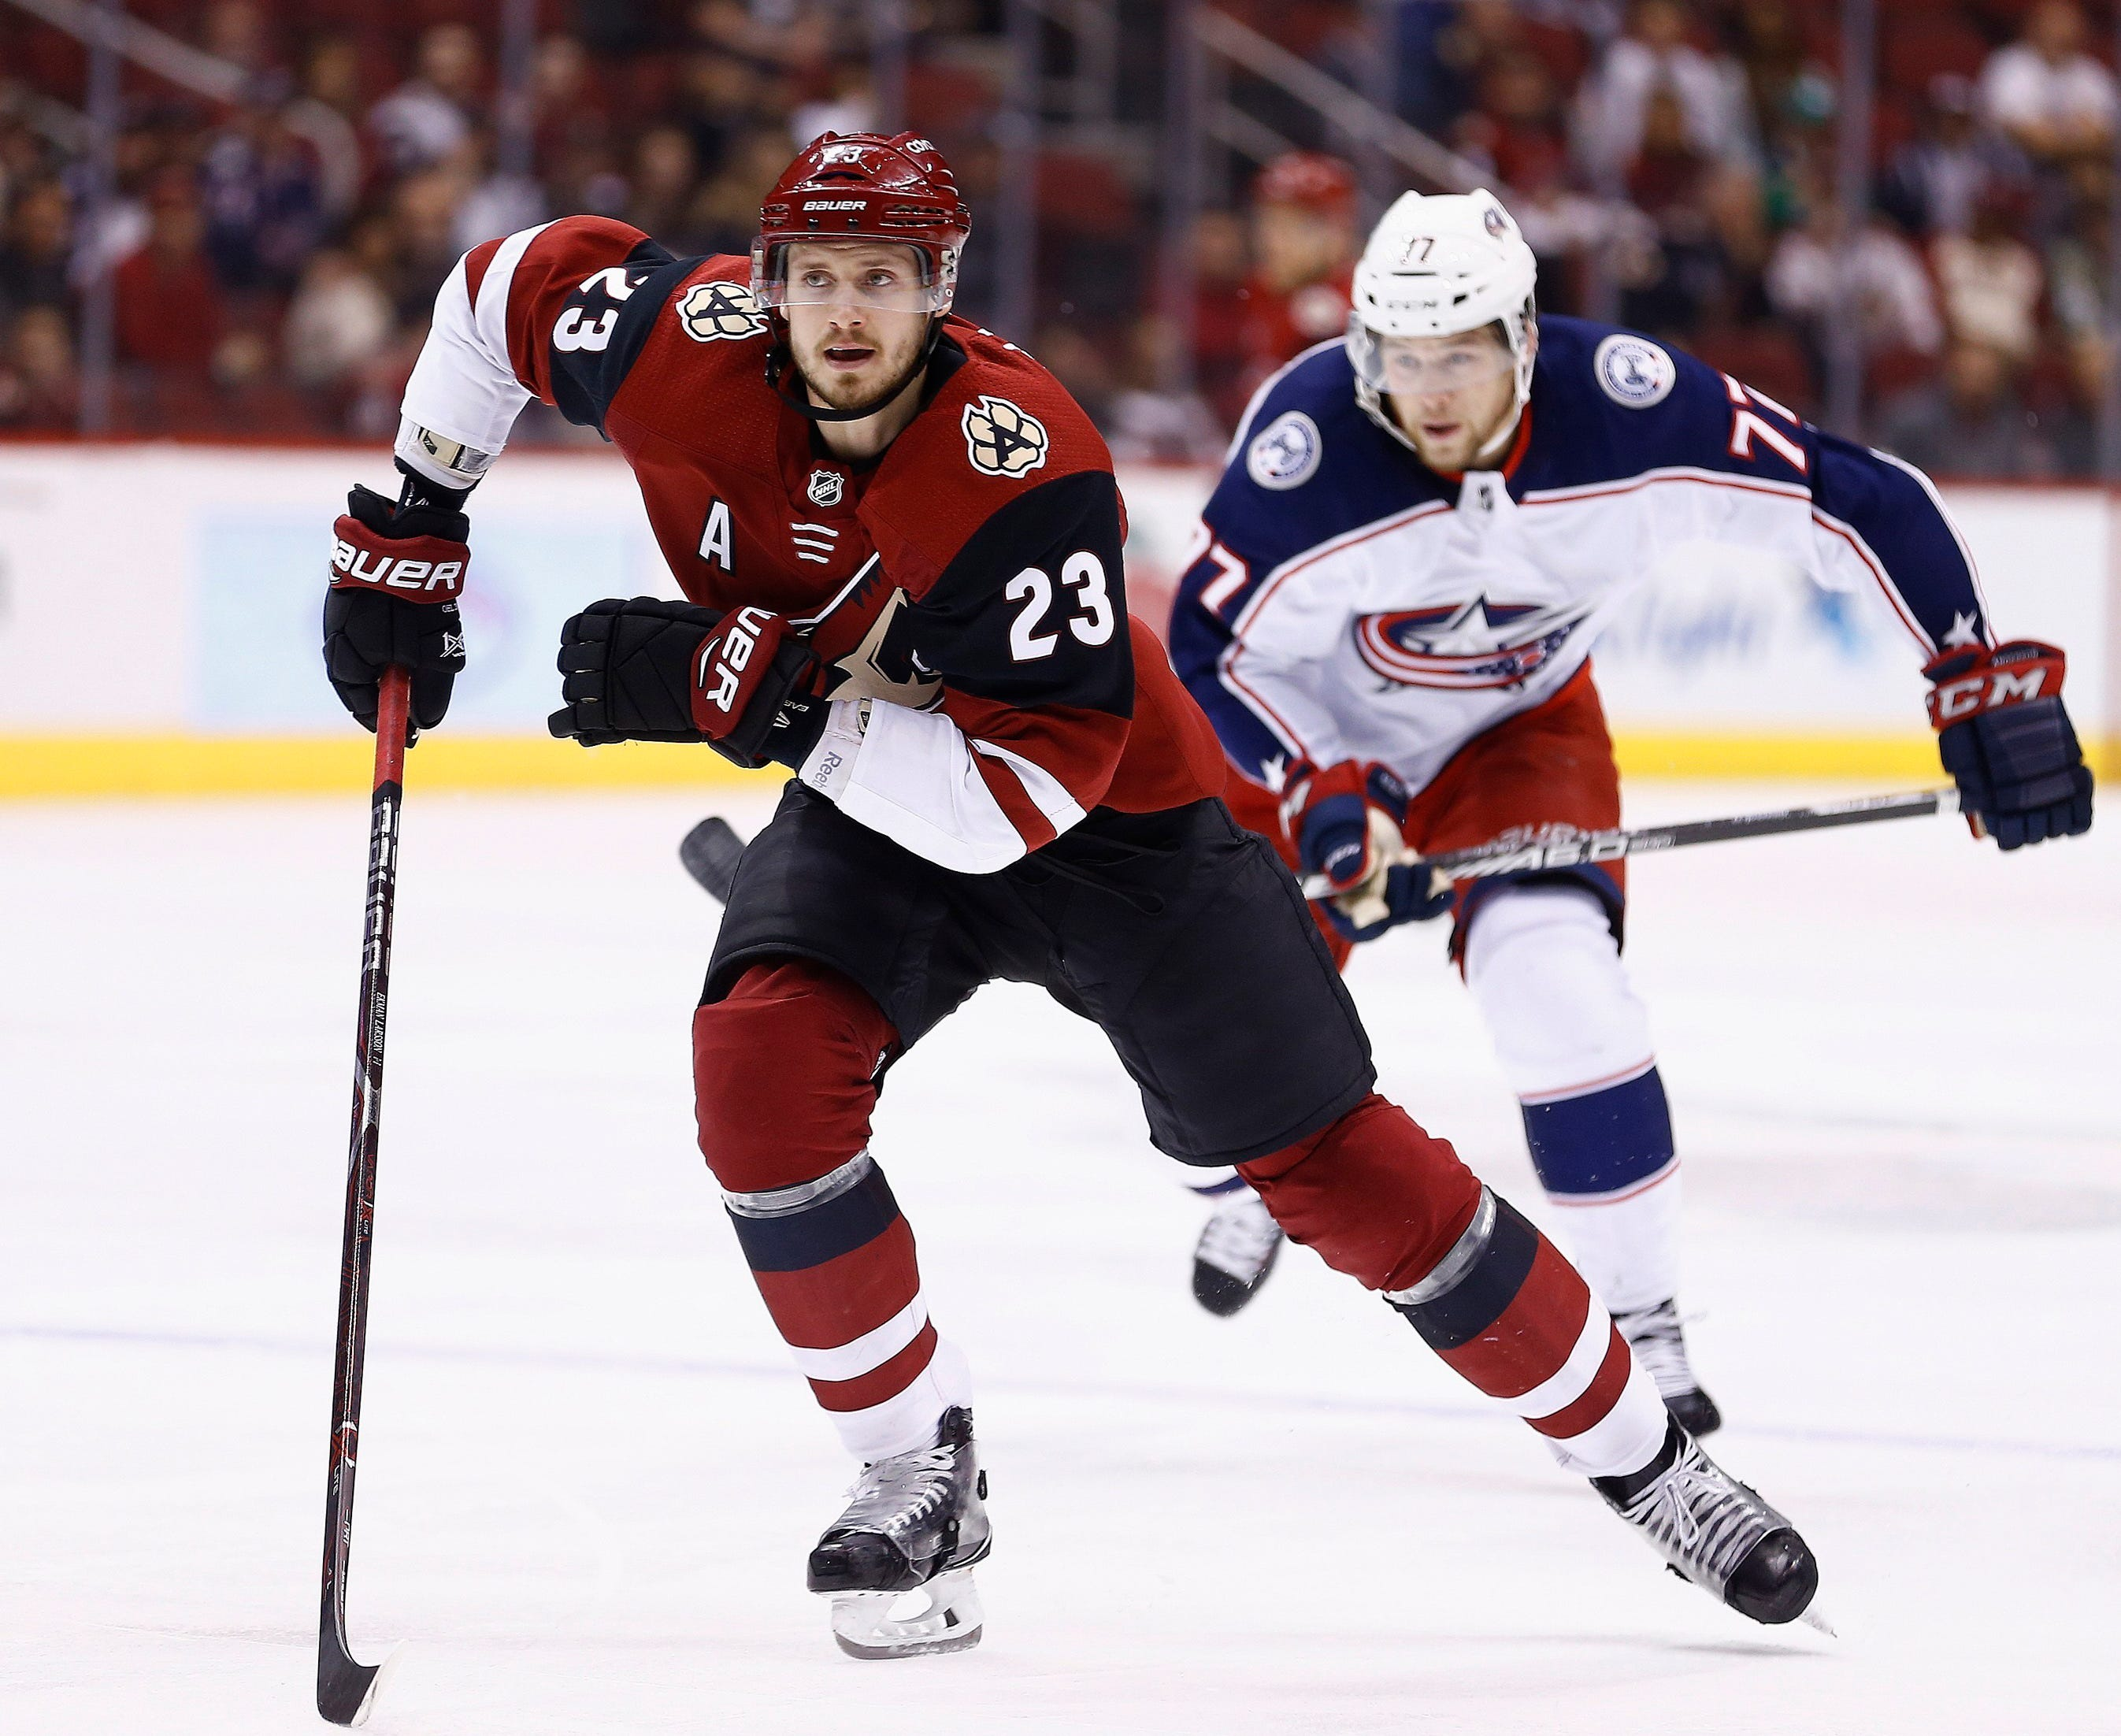 Coyotes sign Ekman-Larsson to 8-year extension